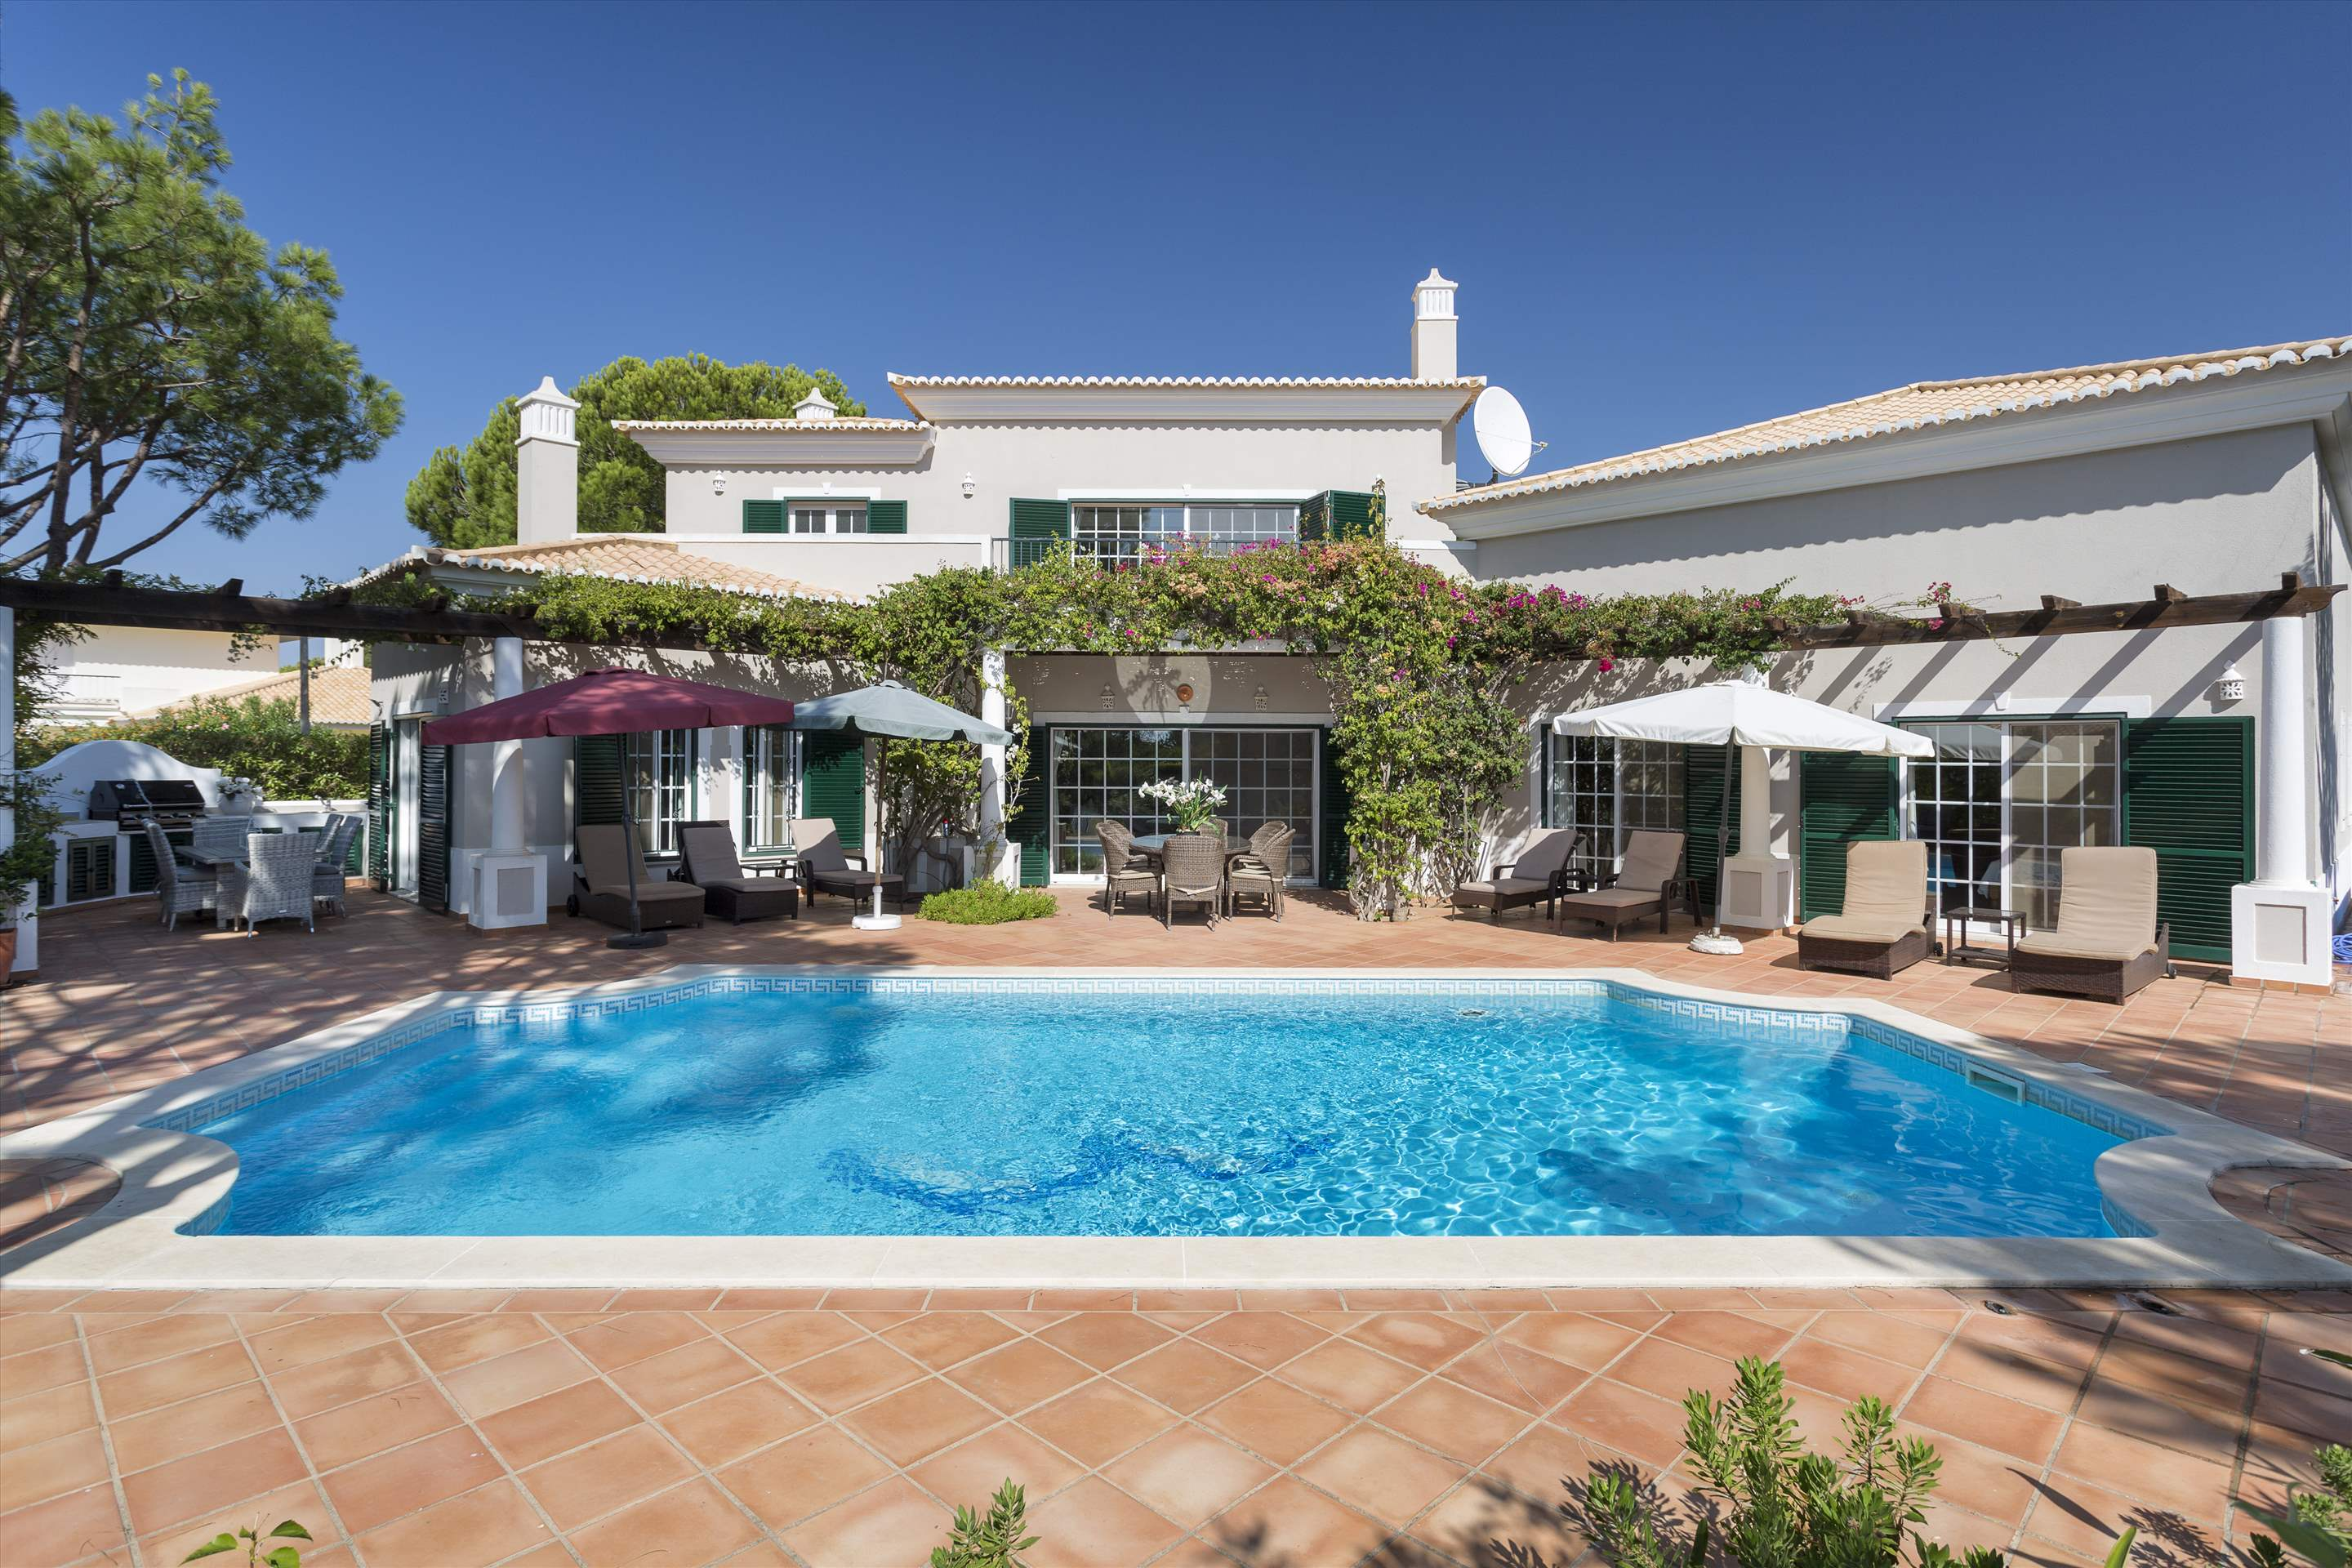 Casa dos Golfinhos, 4 bedroom villa in Vale do Lobo, Algarve